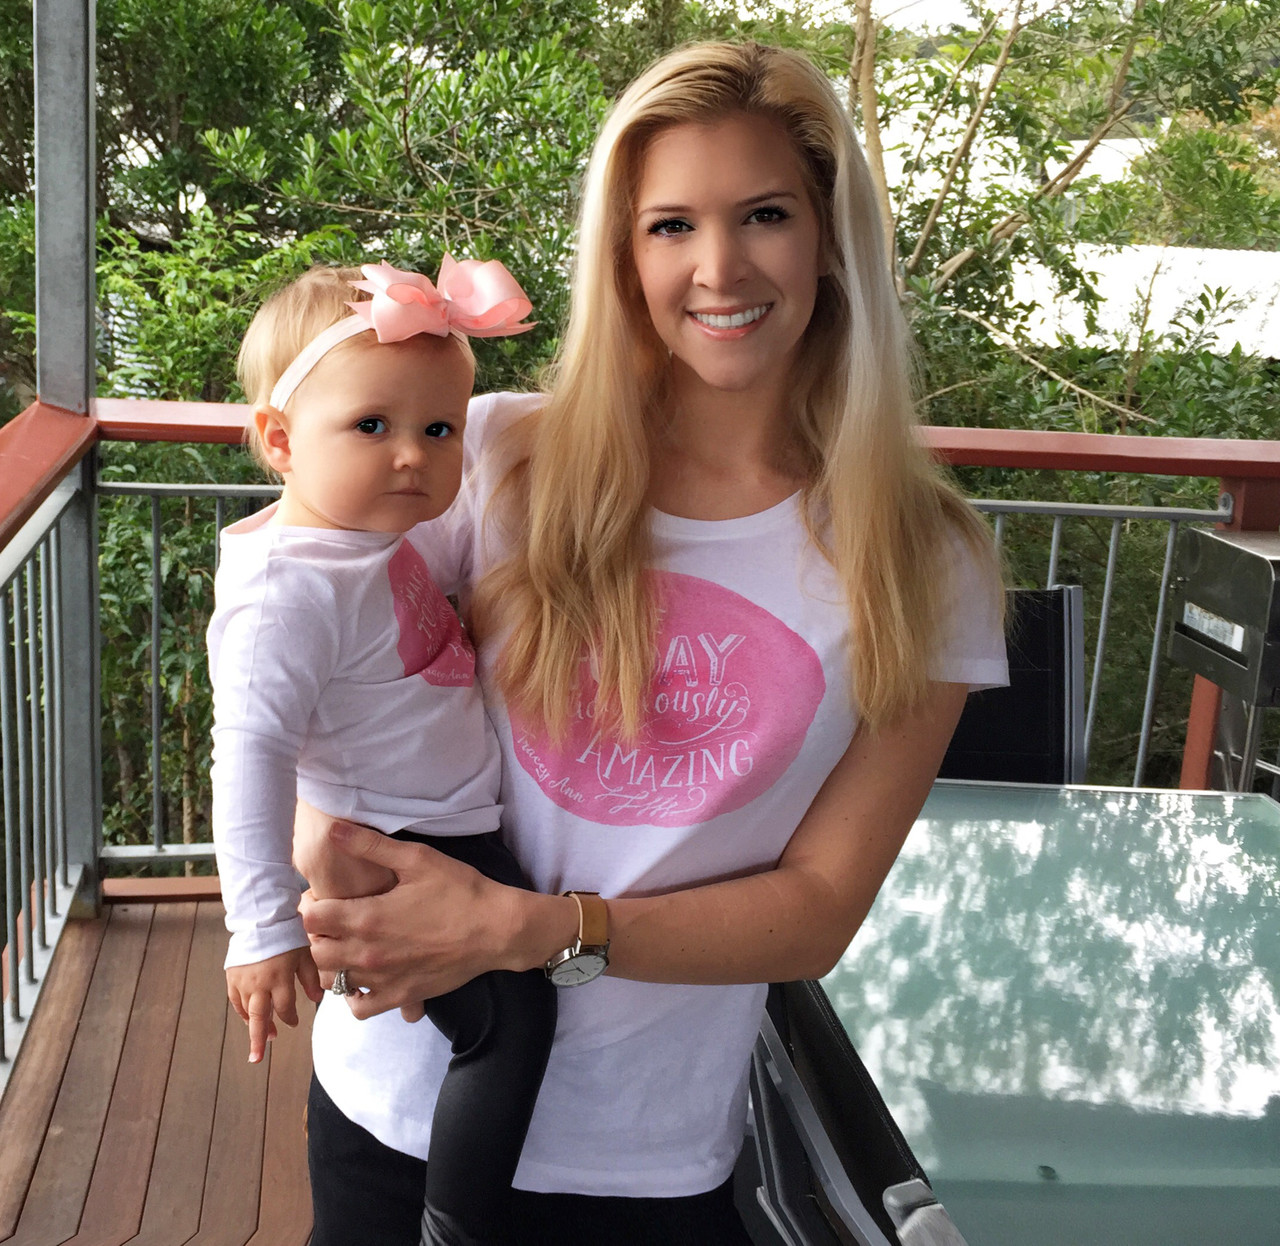 Design your own t-shirt female - Courtney From Littlemischiefco In Her Custom Word On Baby Mummy Tee With Her Daughter